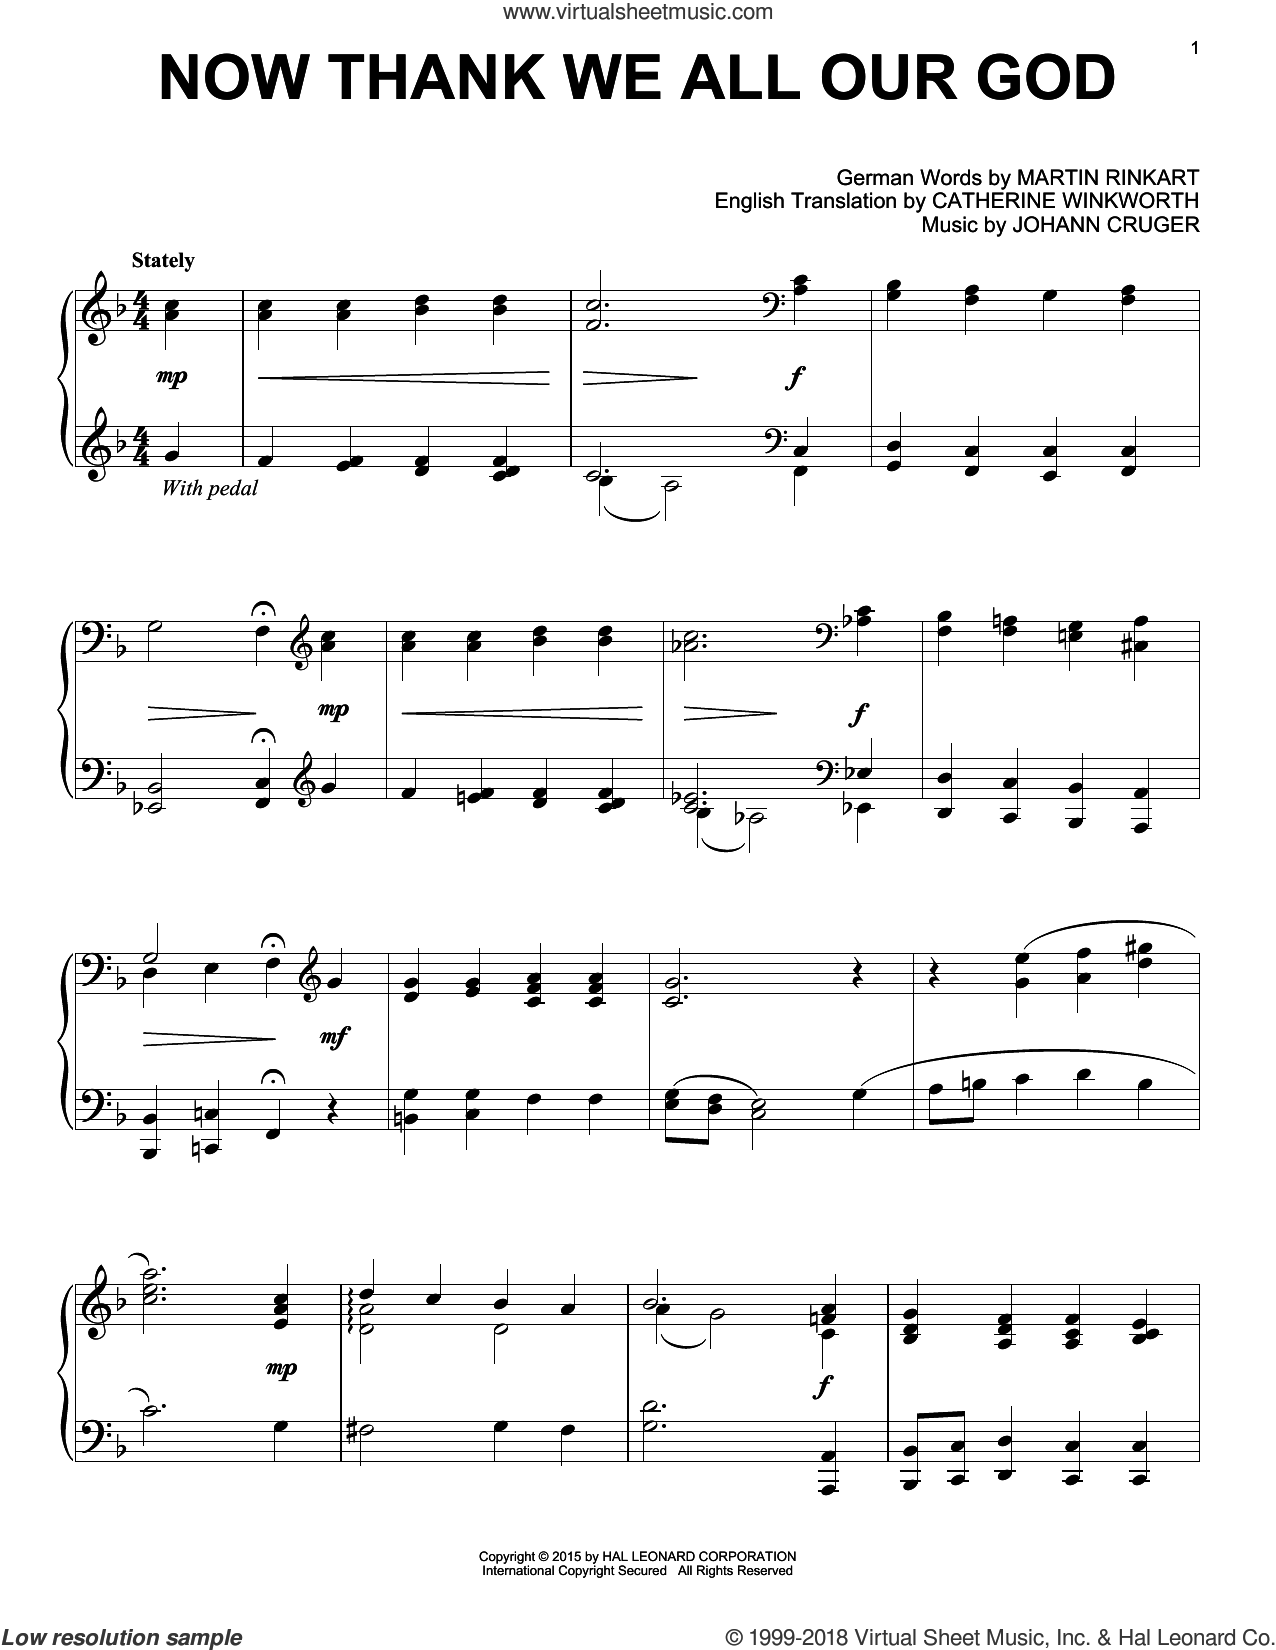 Now Thank We All Our God sheet music for piano solo by Catherine Winkworth